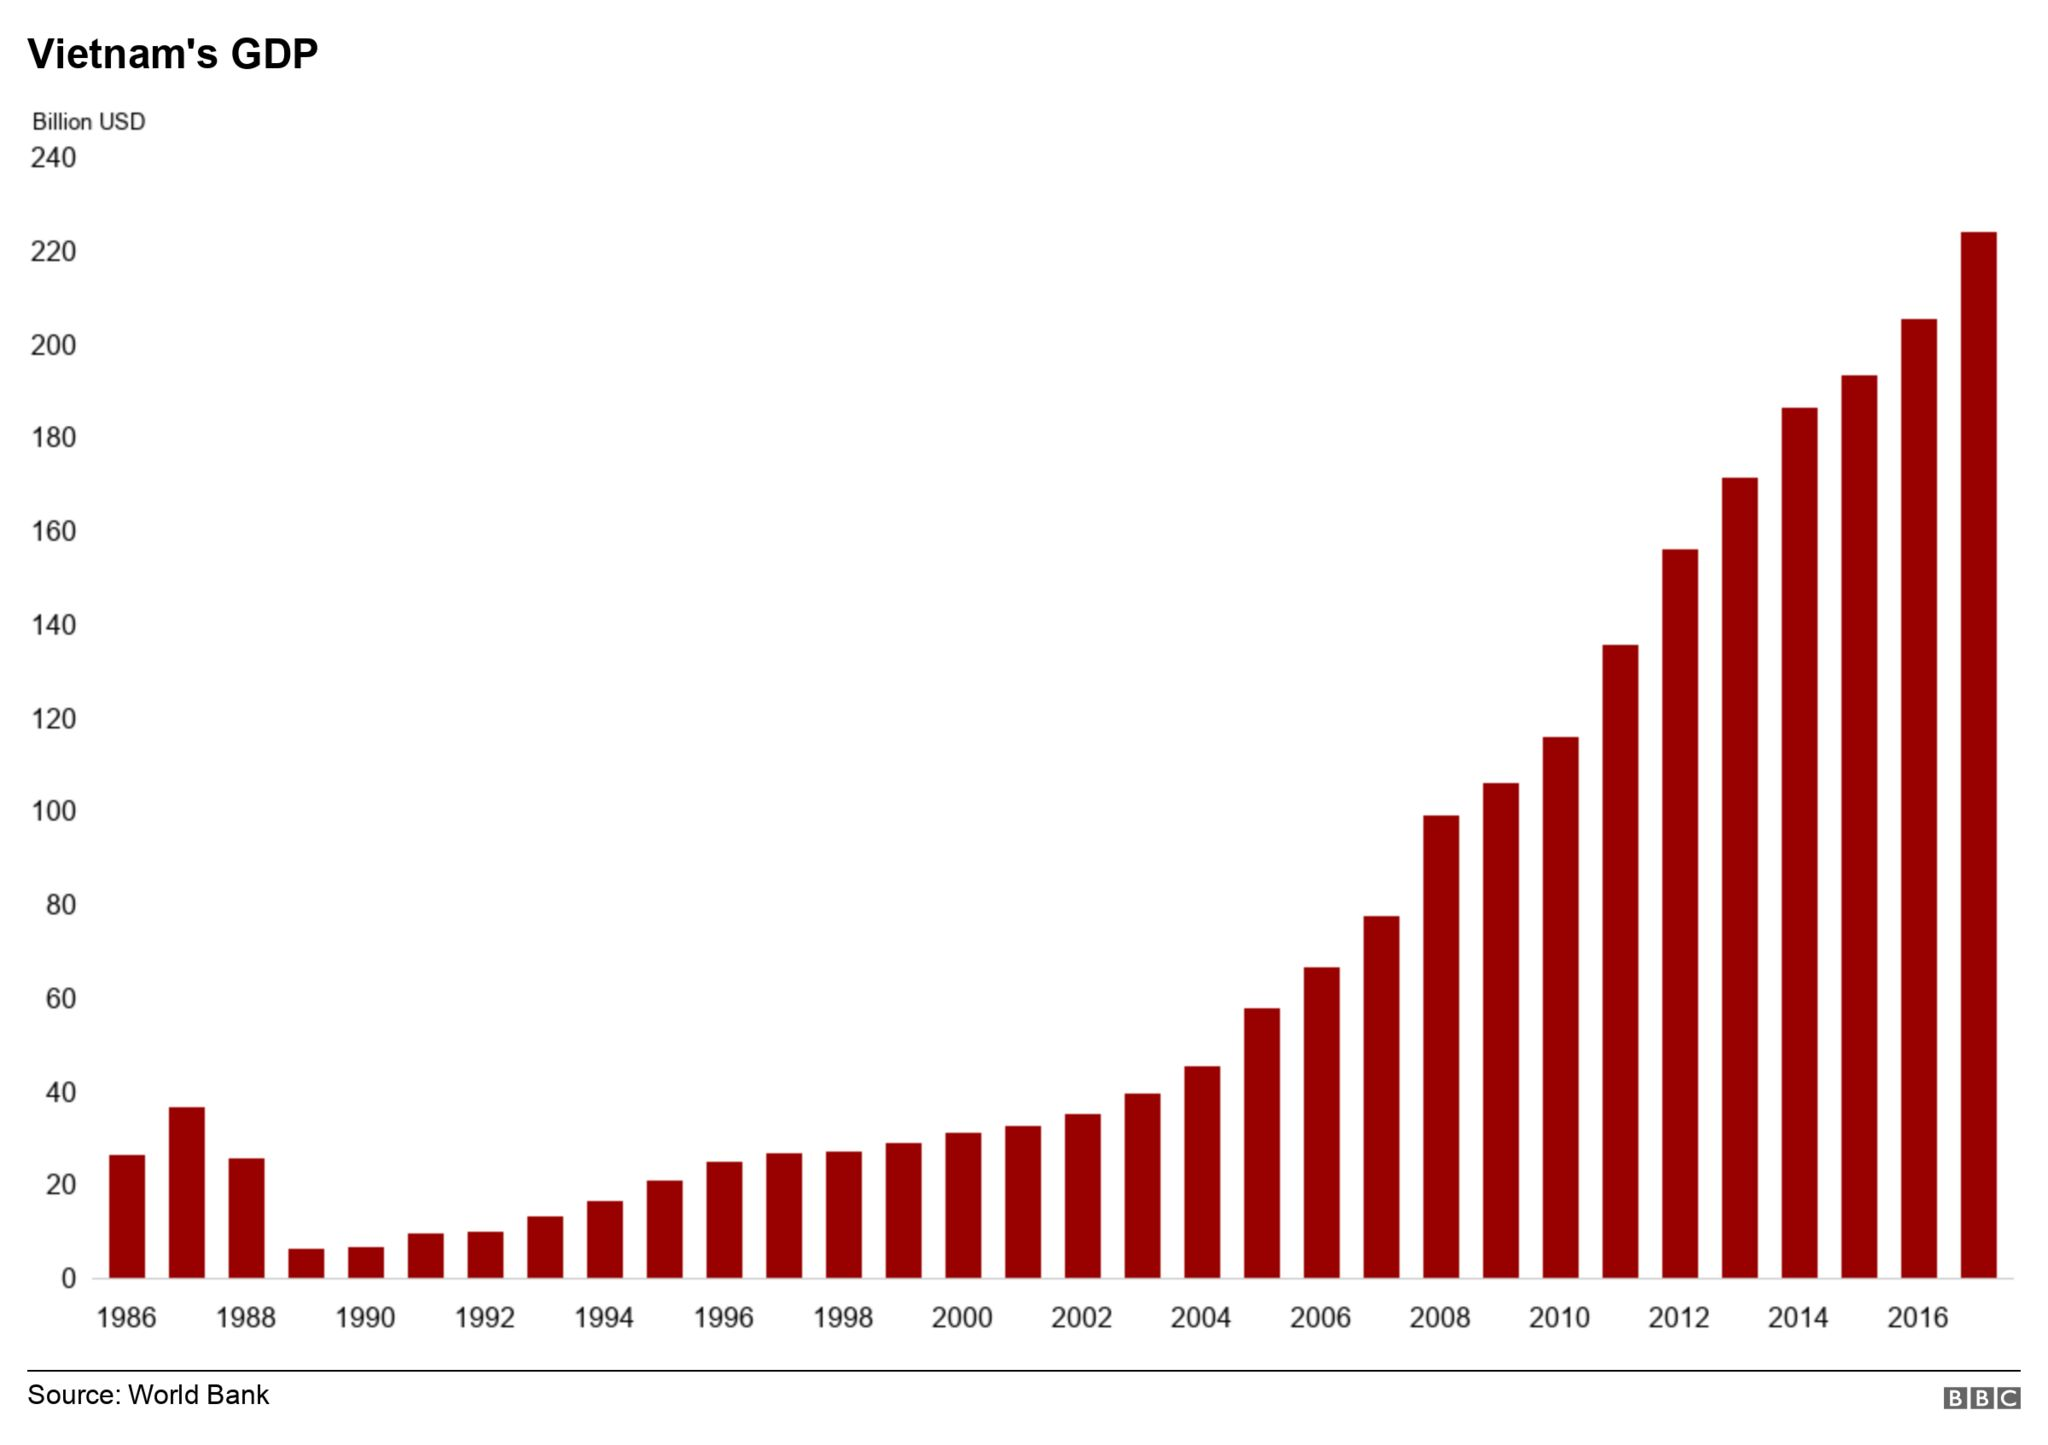 Graph showing Vietnam's GDP increasing since 1986